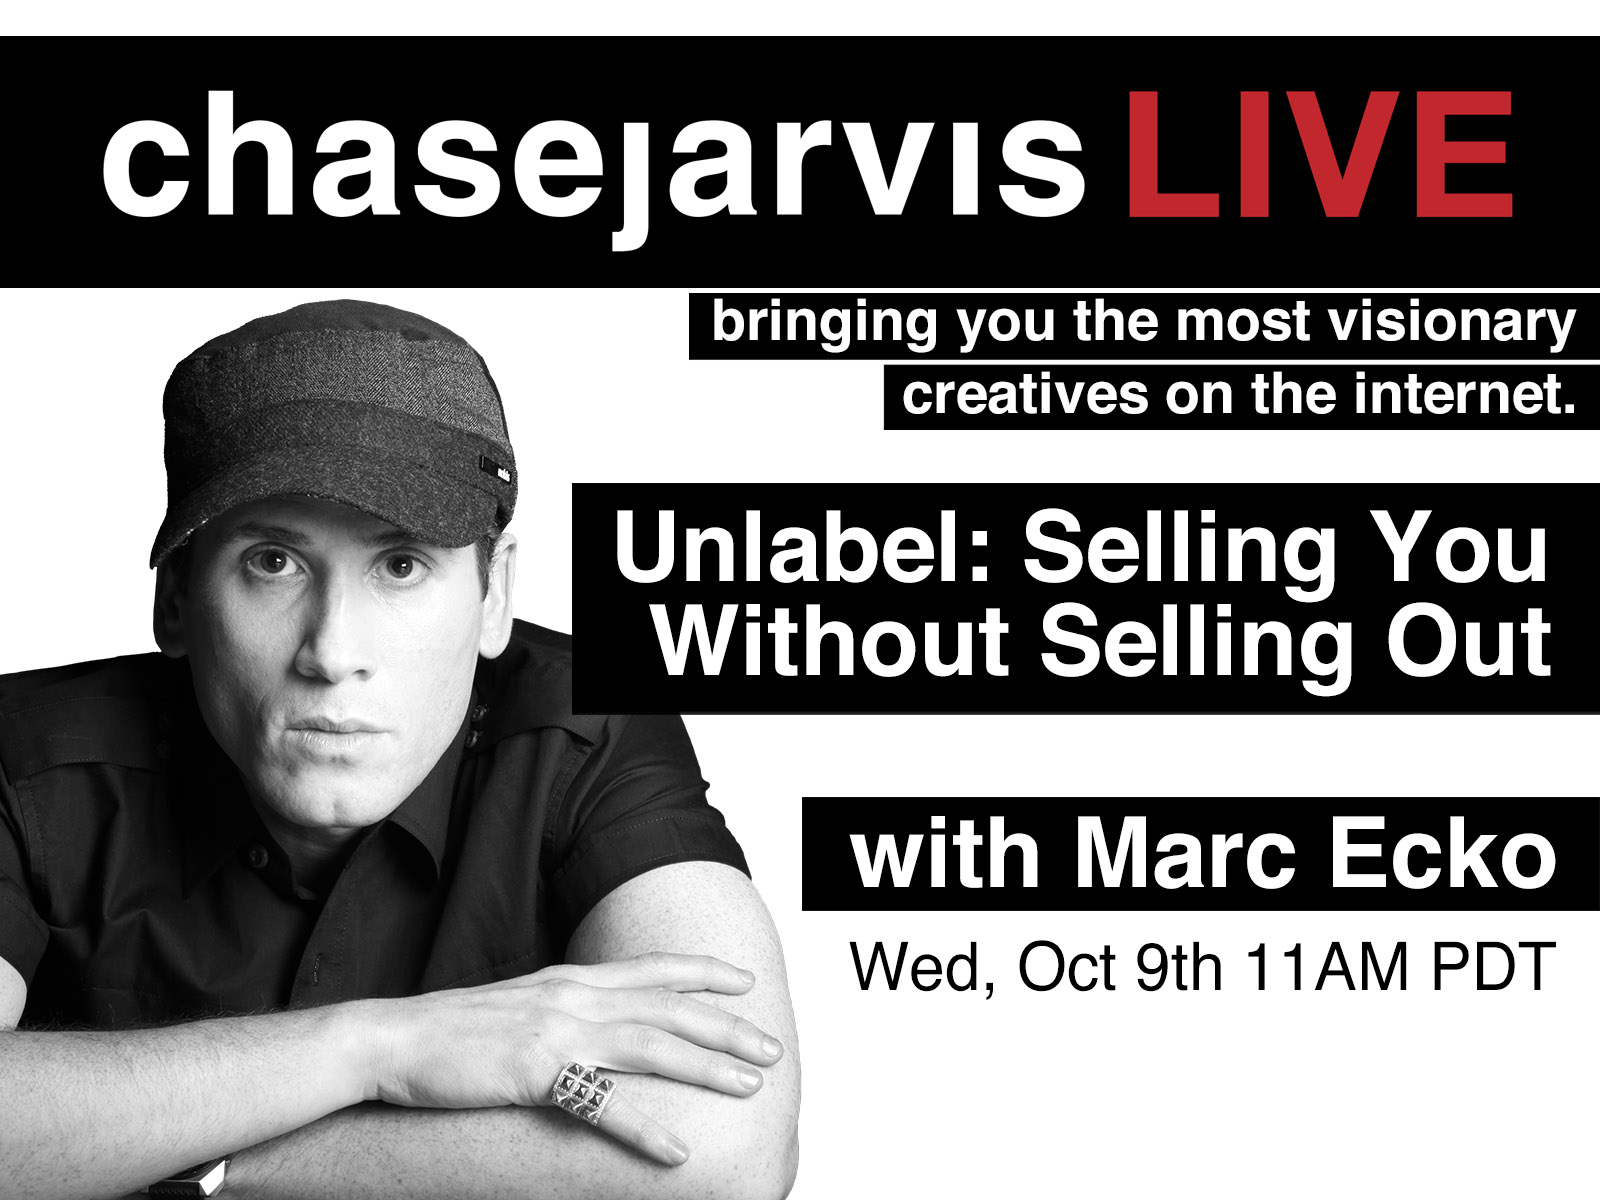 selling you out selling out marc ecko on chase jarvislive how to sell yourself out selling out legendary marc ecko today on chasejarvislive oct 9